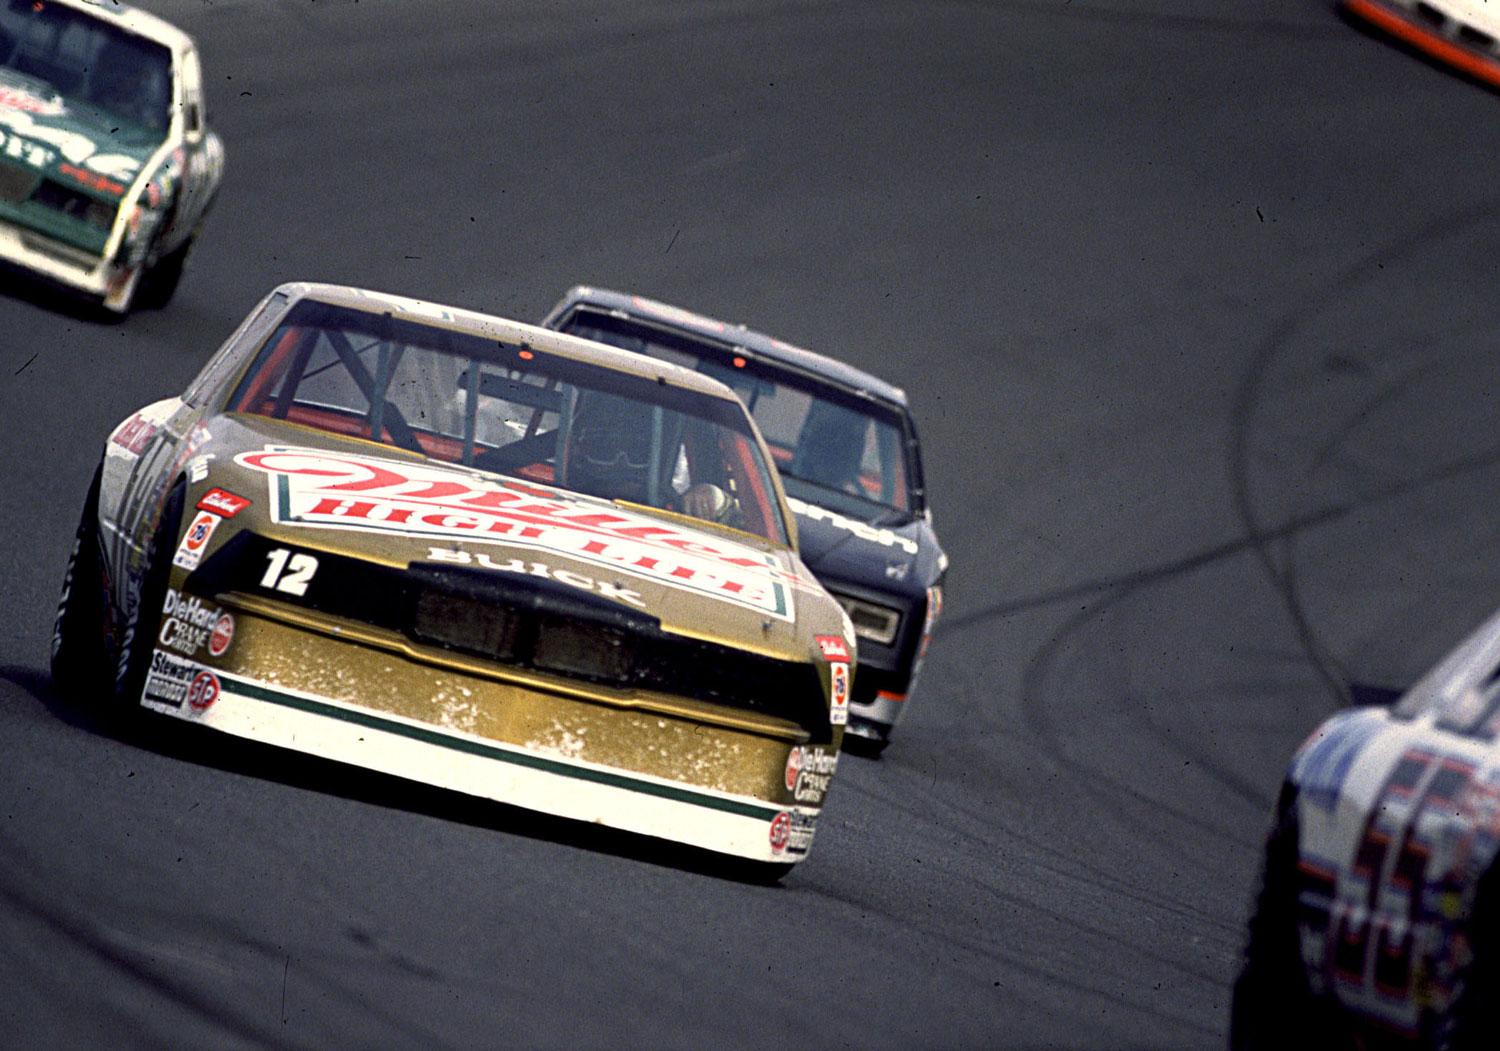 1988 Buick Regal Racecar driven by Bobby Allison